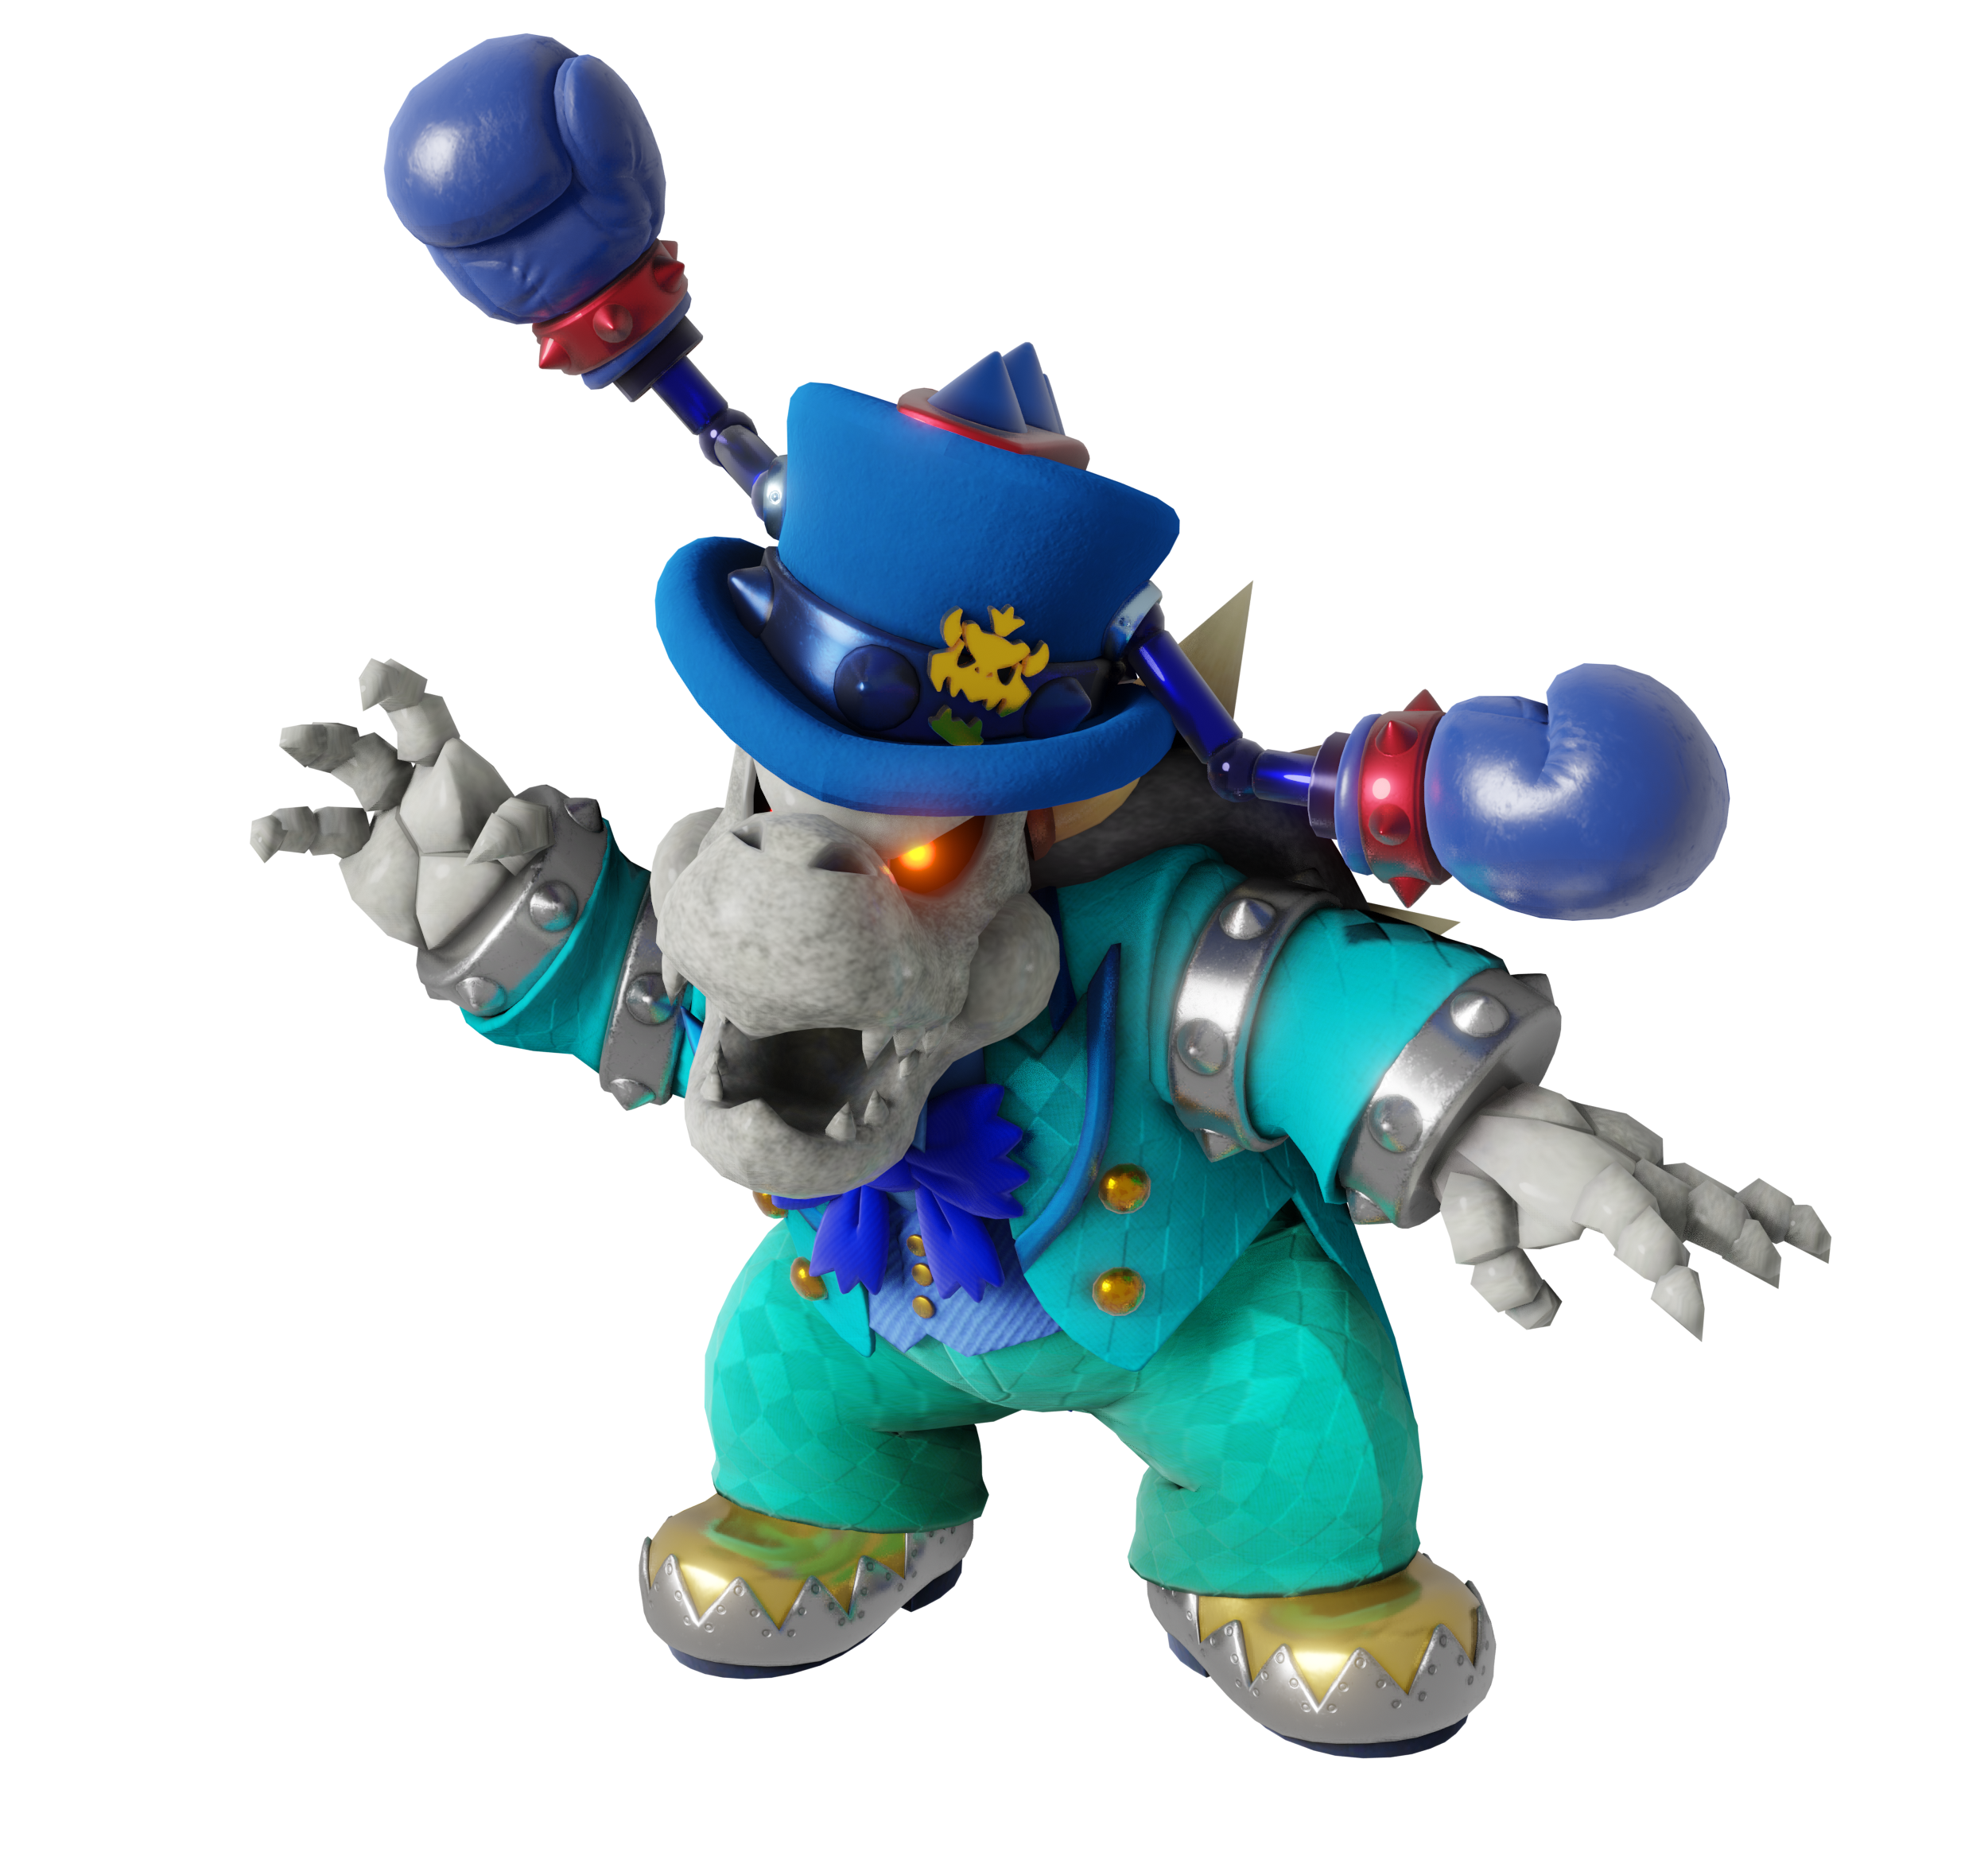 Dry_Bowser_Wedding_Outfit_Render_2_With_Hat.png